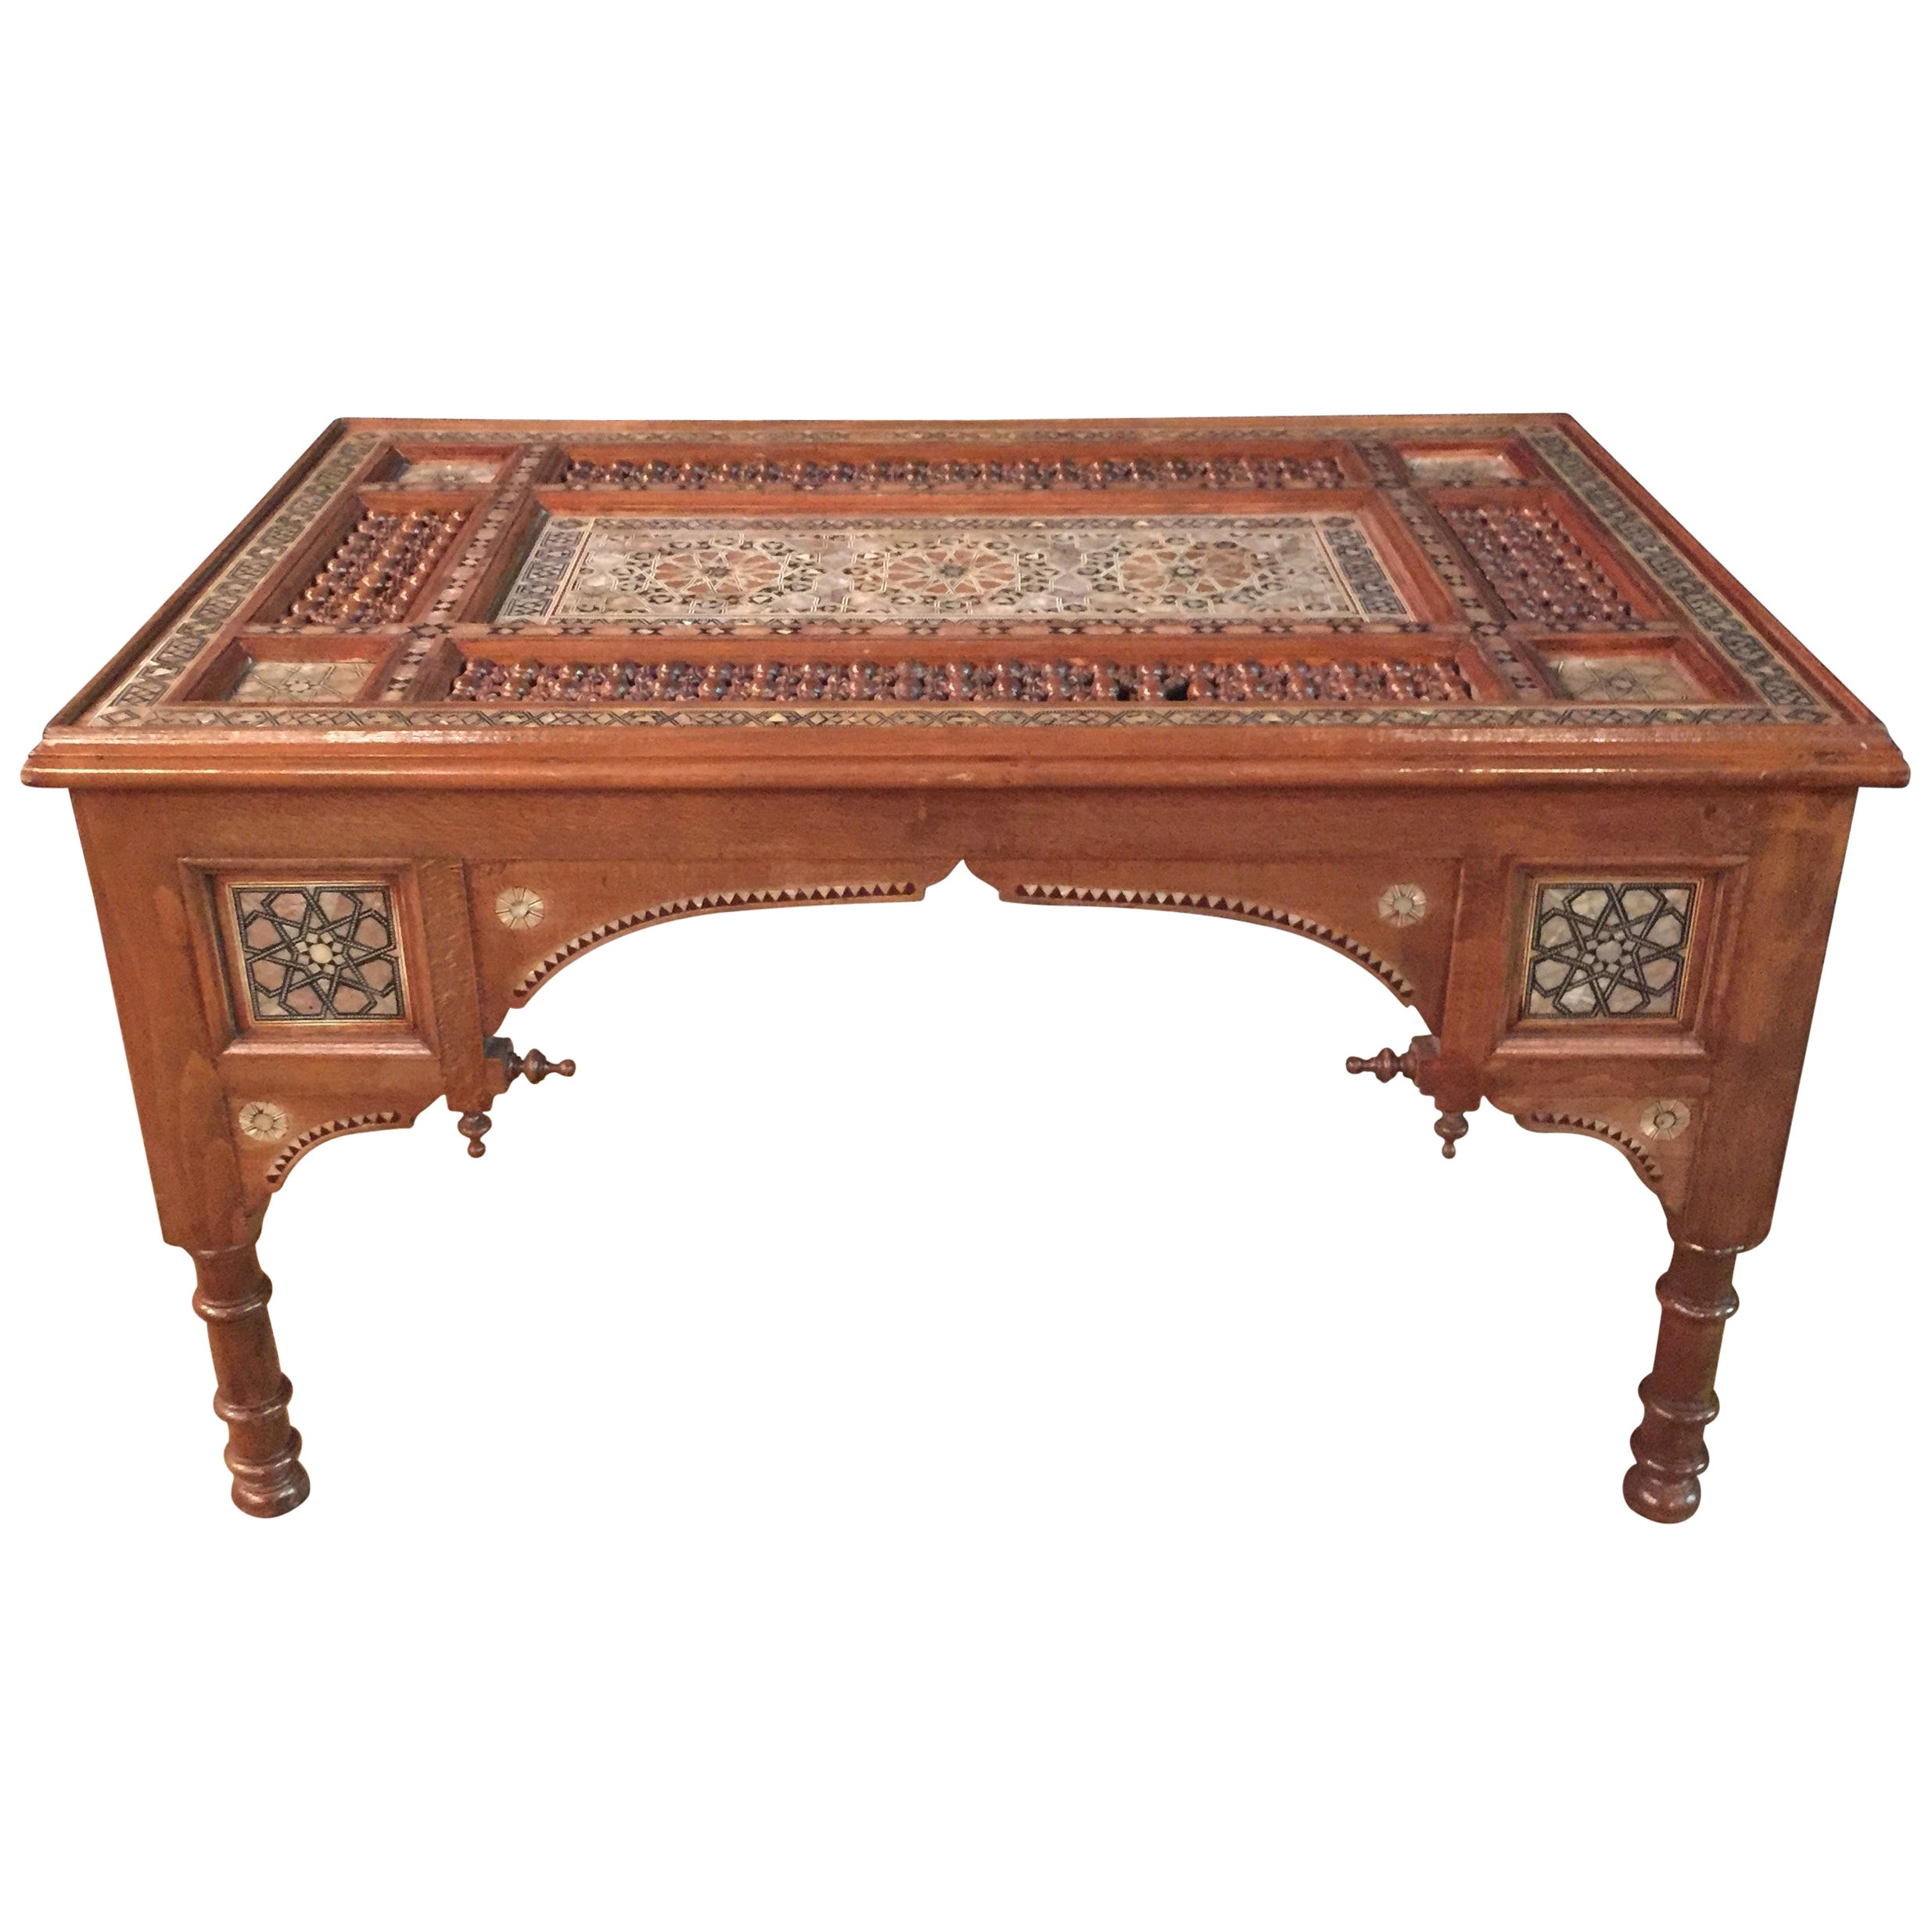 Oriental Coffee Table, Inlaid with Finest Mother of Pearl